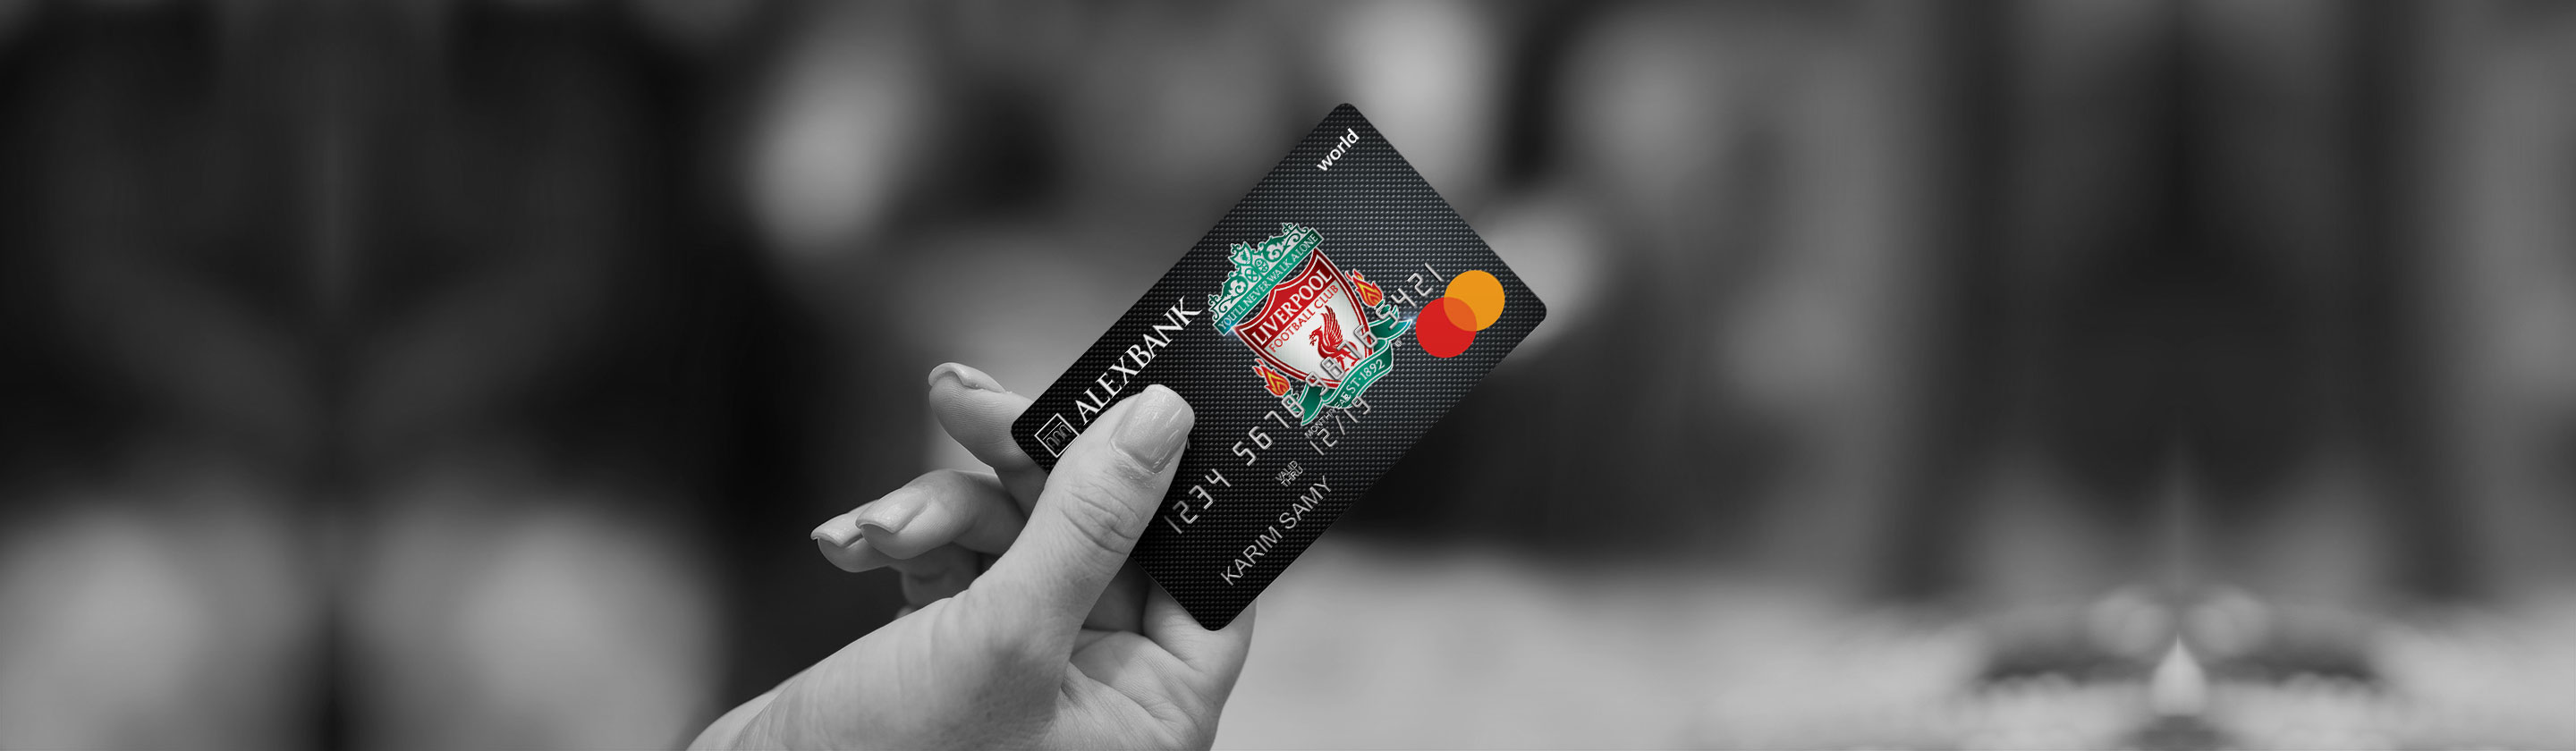 Liverpool World Credit Card